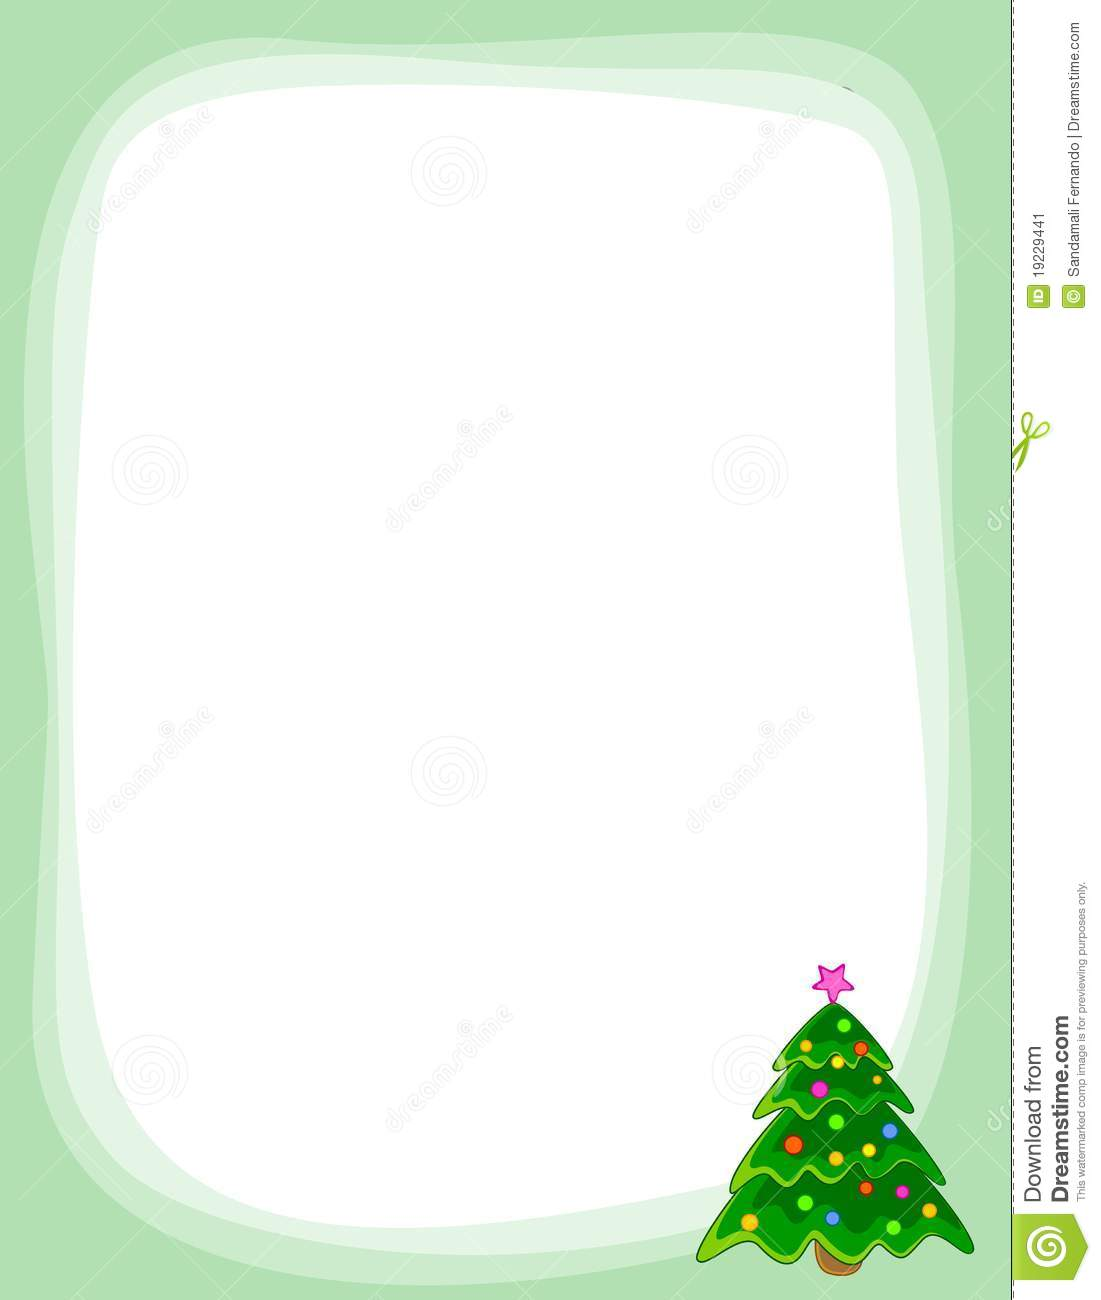 Christmas border / frame with beautiful decorated christmas tree.